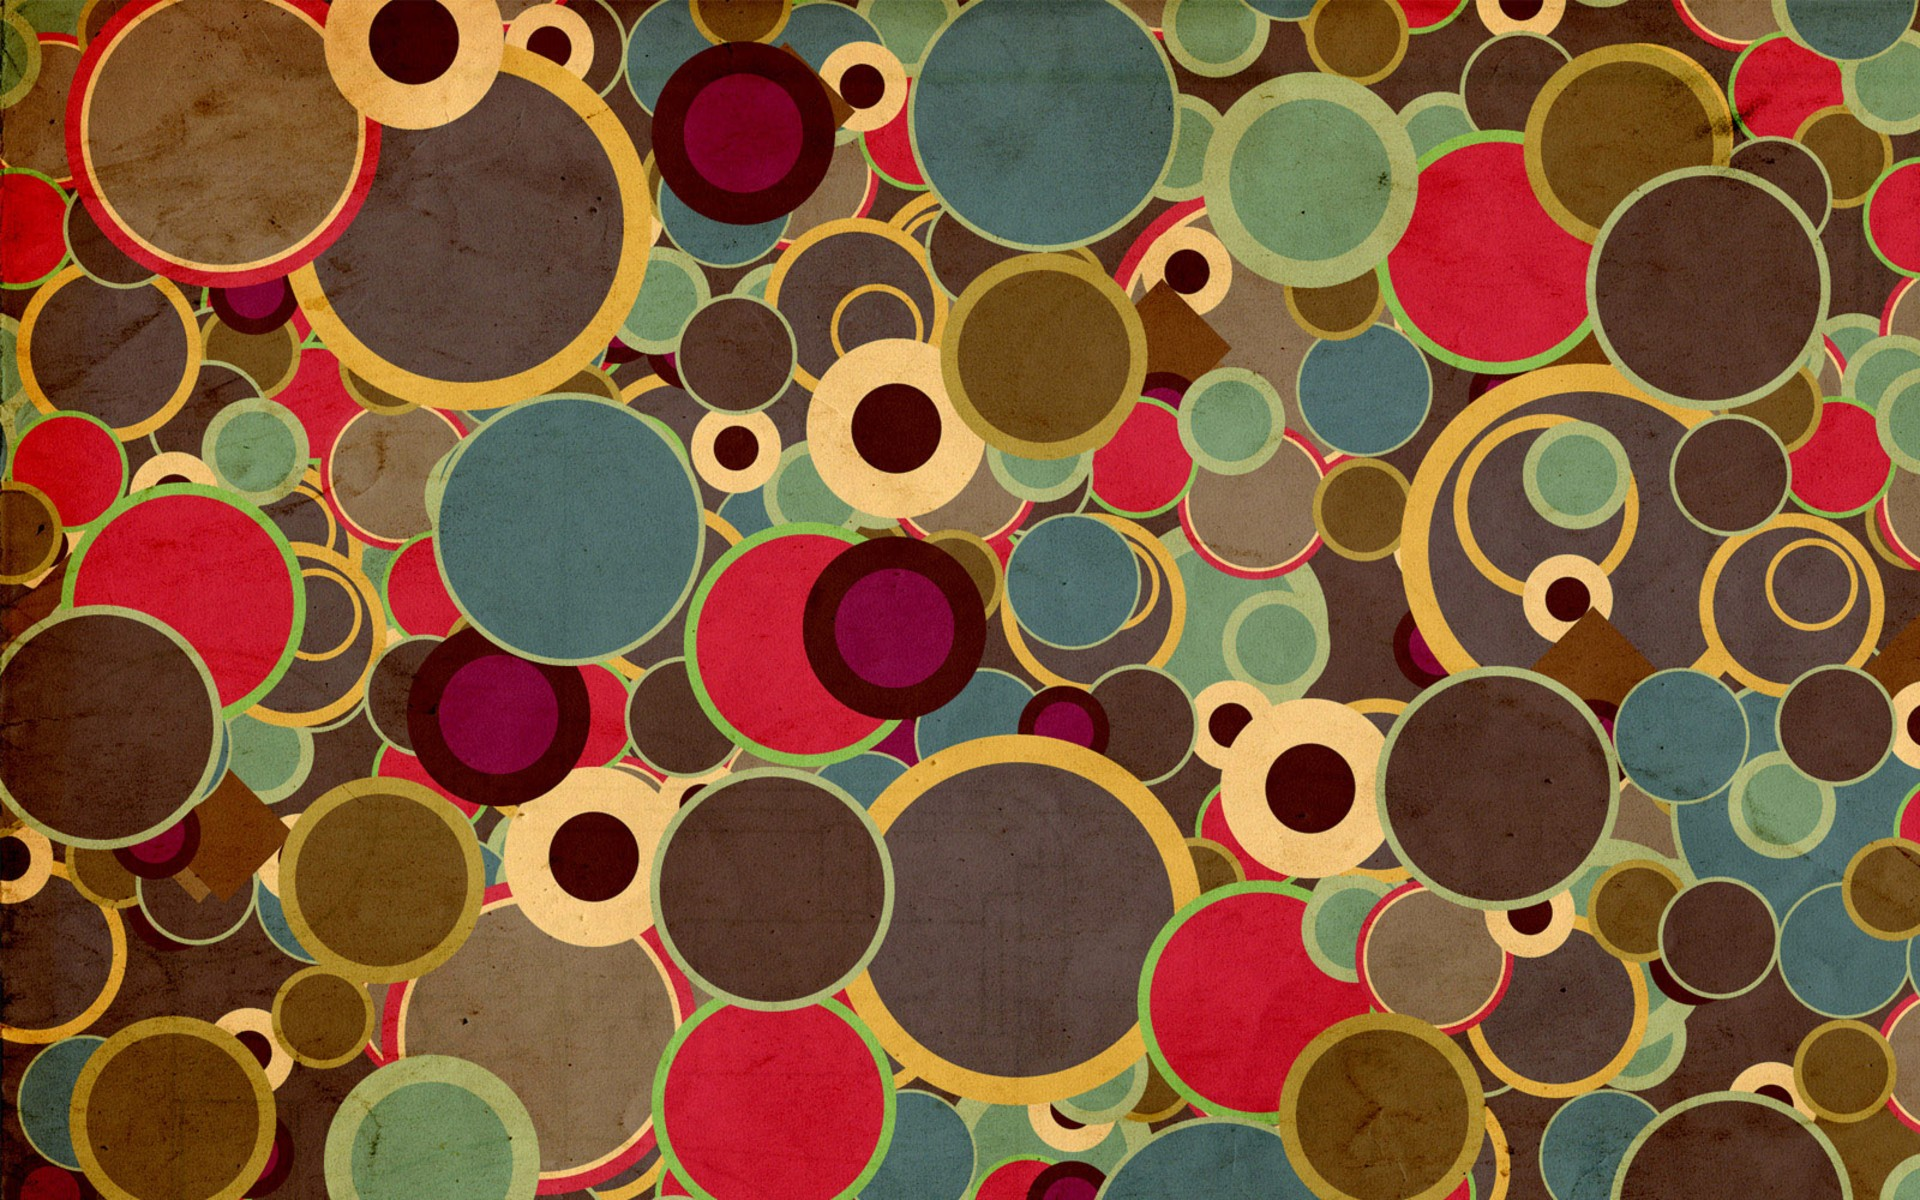 1920x1200 Multicolored Circles